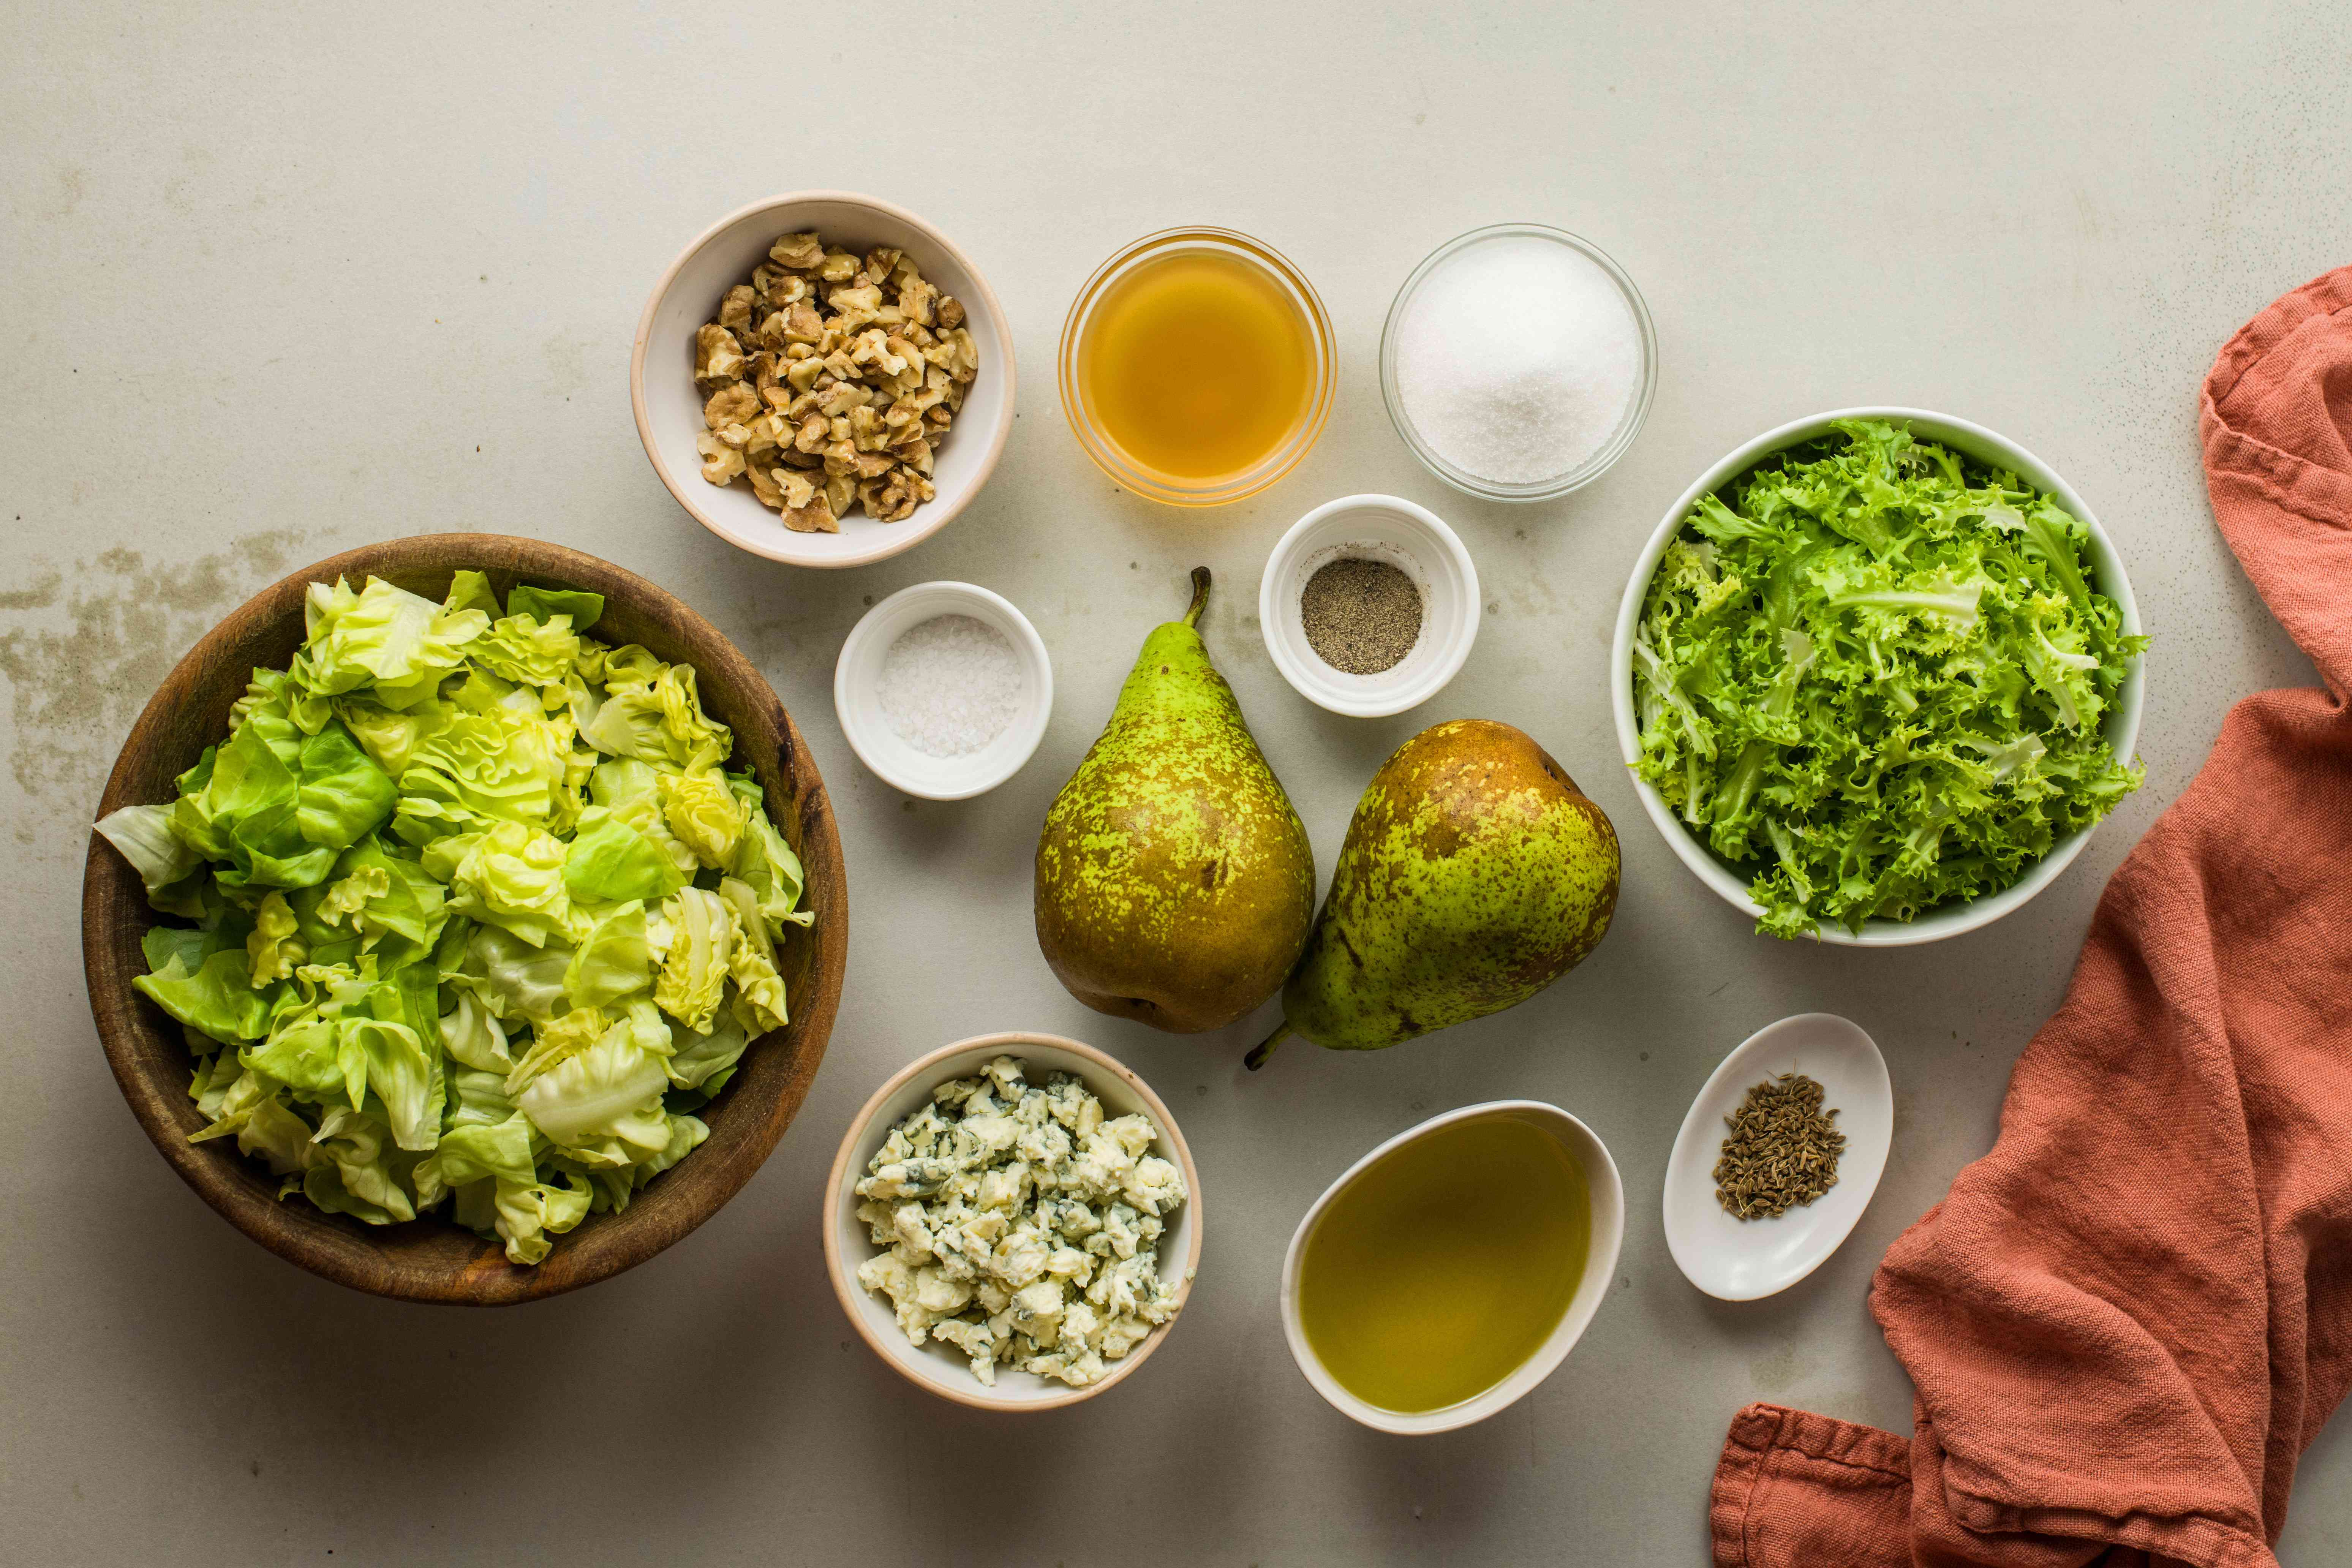 Ingredients for pear and greens salad